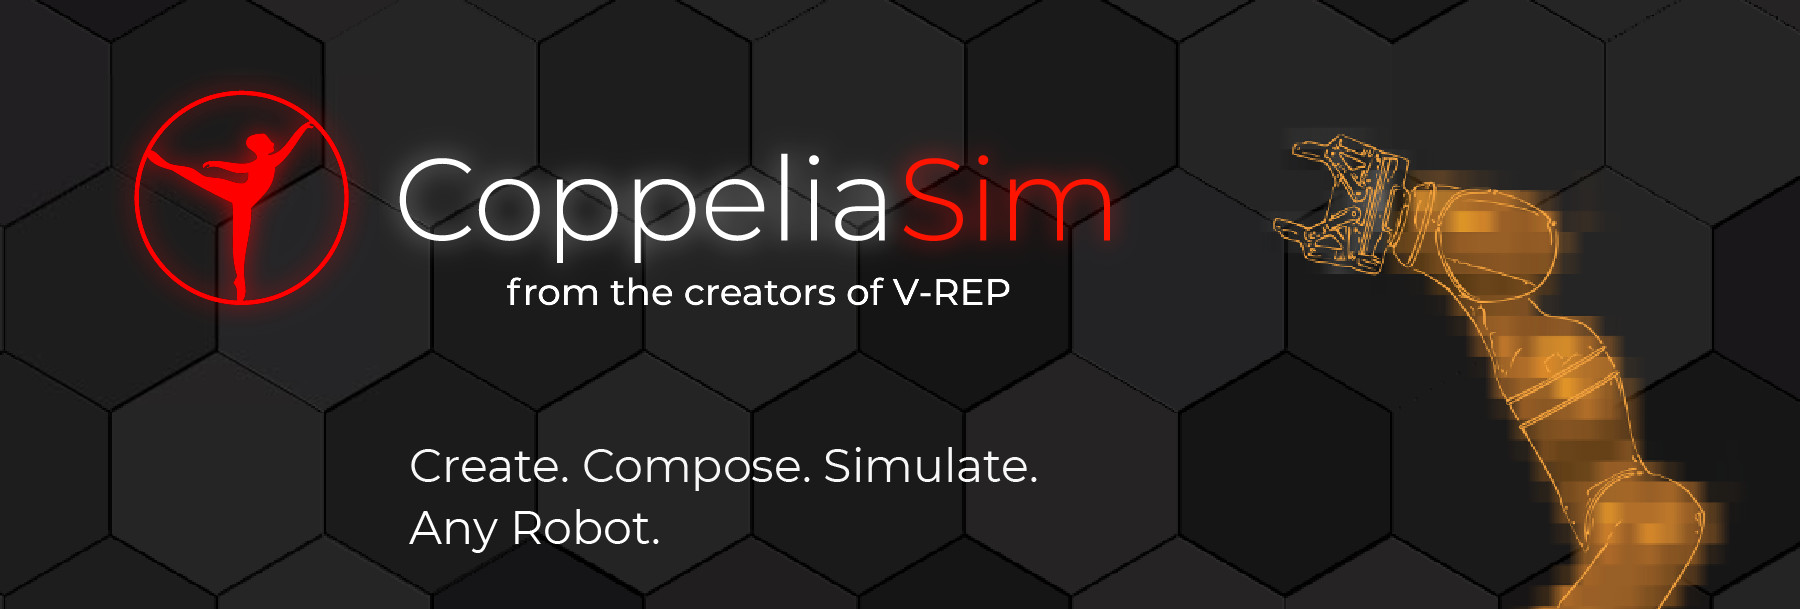 CoppeliaSim: Create. Compose. Simulate. Any Robot.